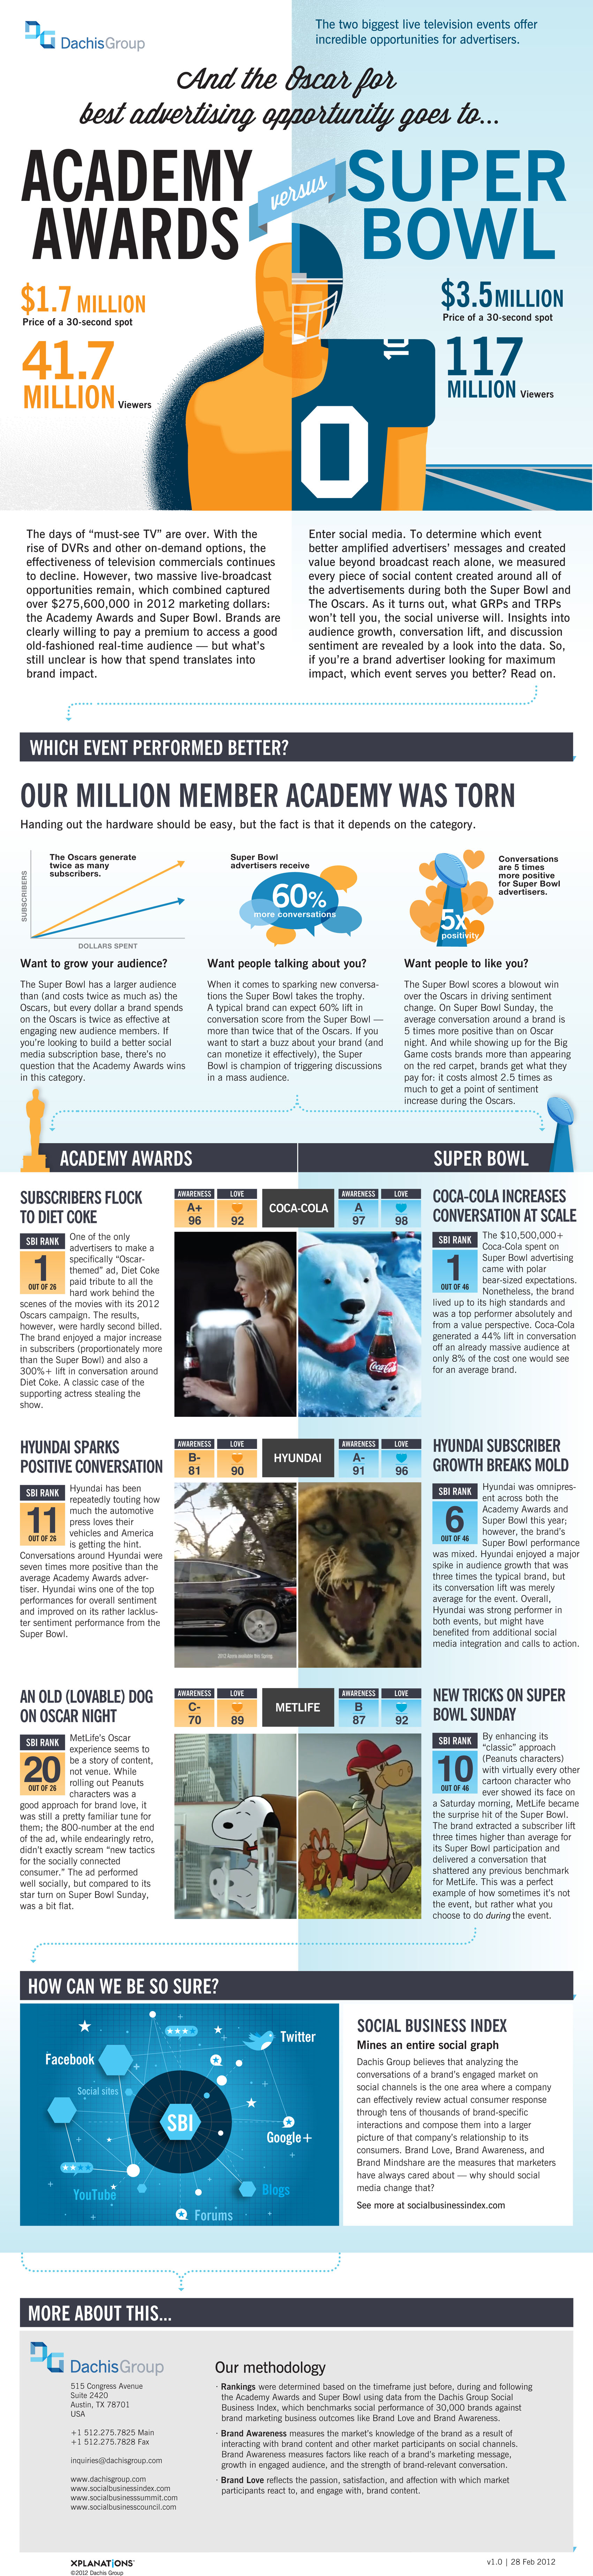 The Oscars Versus the Superbowl (infographic)